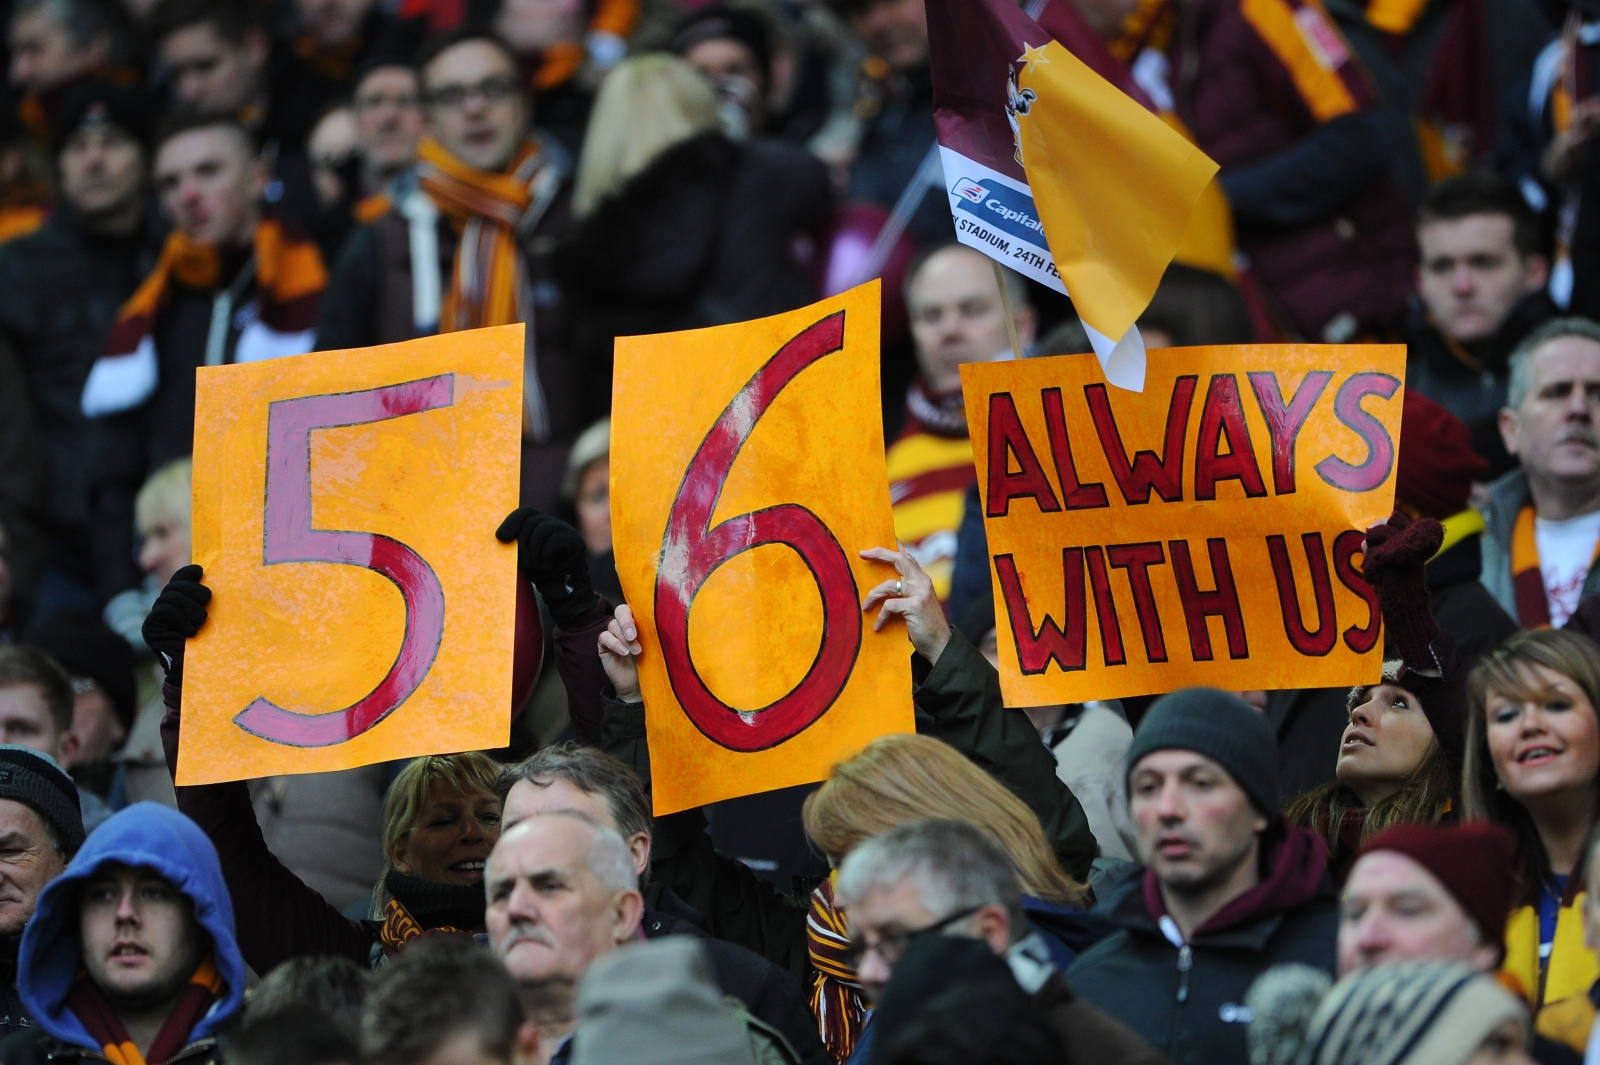 Bradford City fire: Police reveal who was responsible for ...